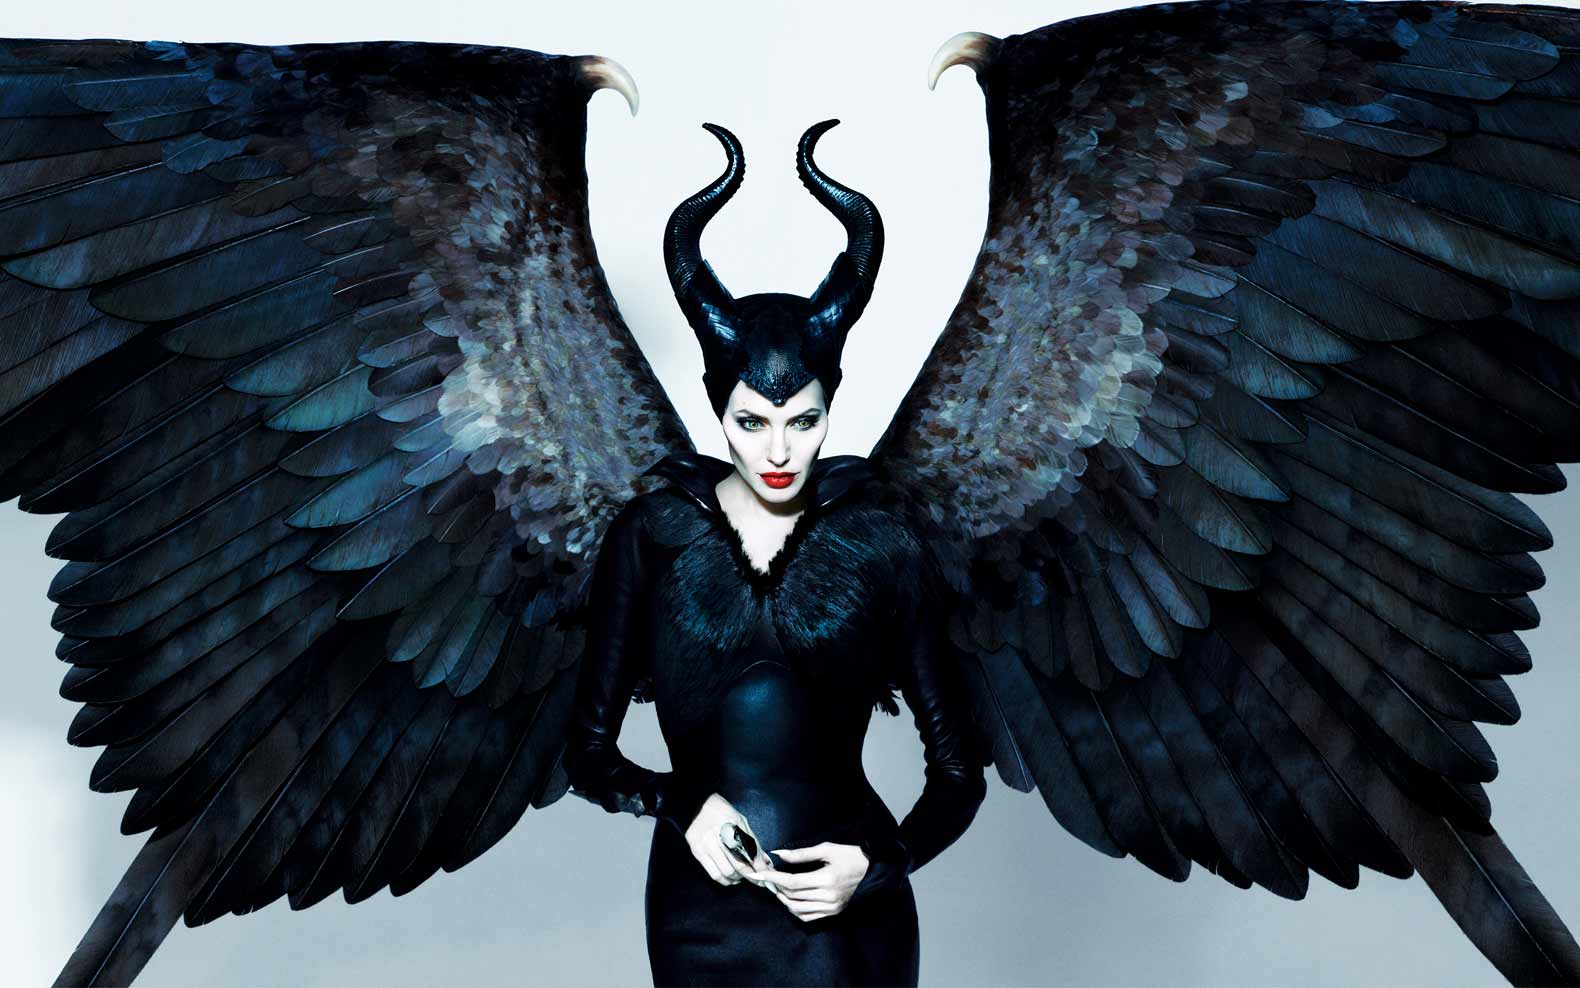 angelina_jolie_maleficent-hollywood-top-female-villain-costumes -halloween-ideas-  sc 1 st  Shilpa Ahuja & Top Female Superheroes and Villains Costumes in Hollywood